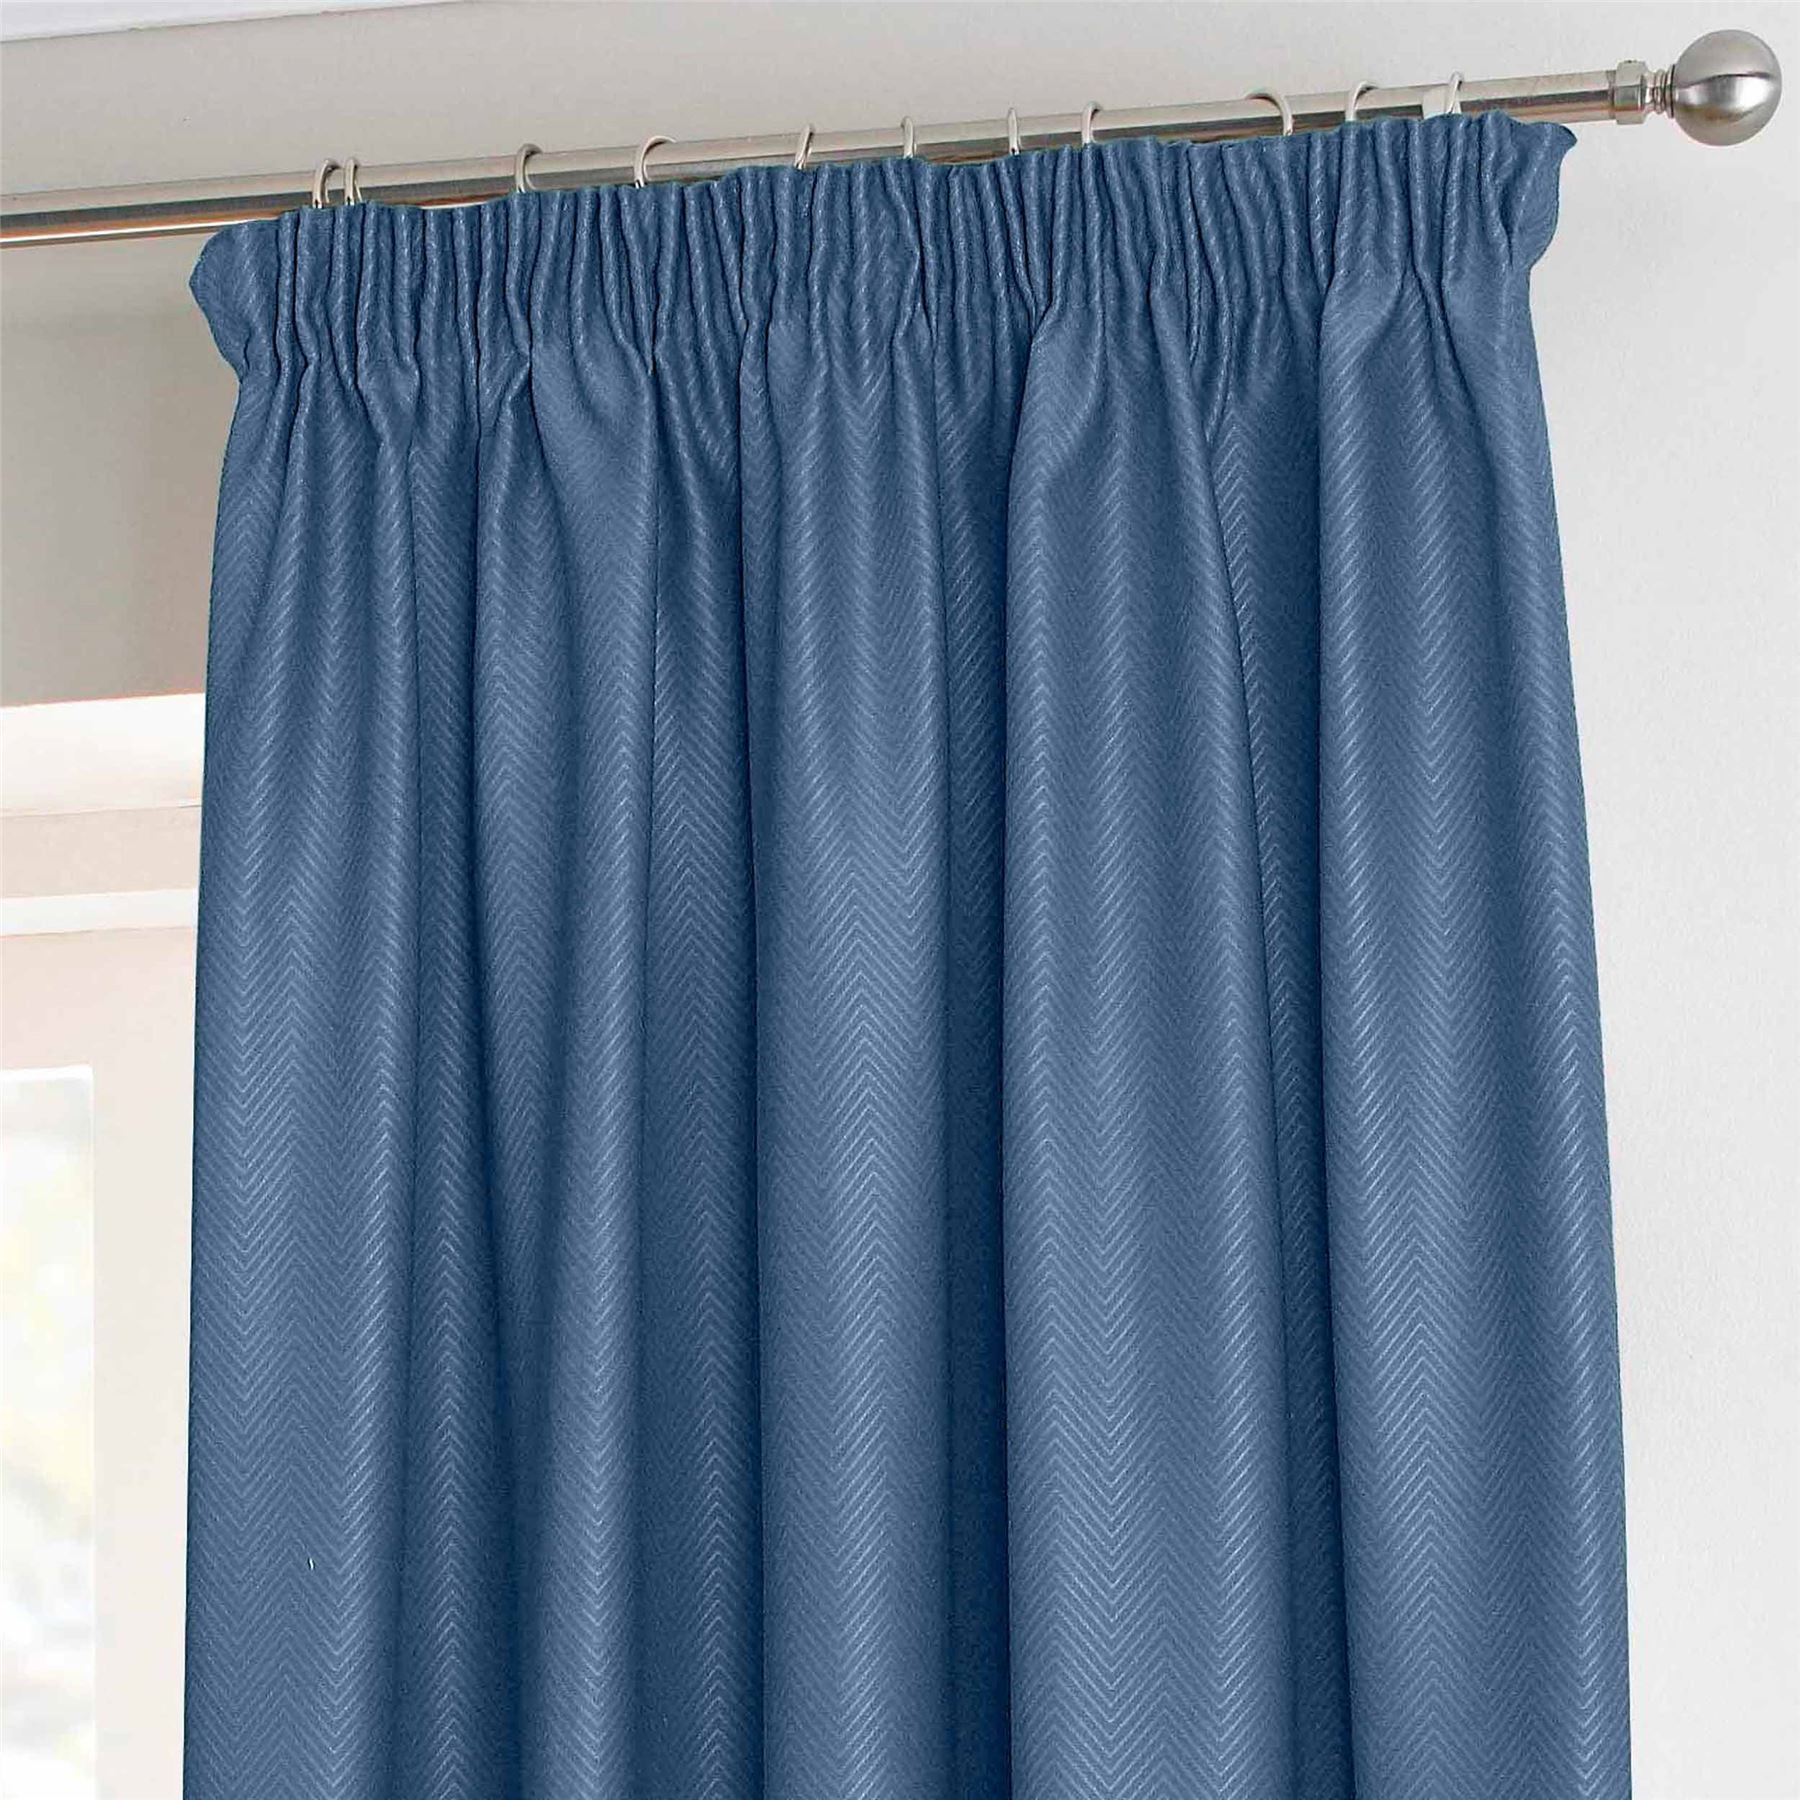 shower curtains curtain with fashions weighted carnation designs blue liner linen home fabric